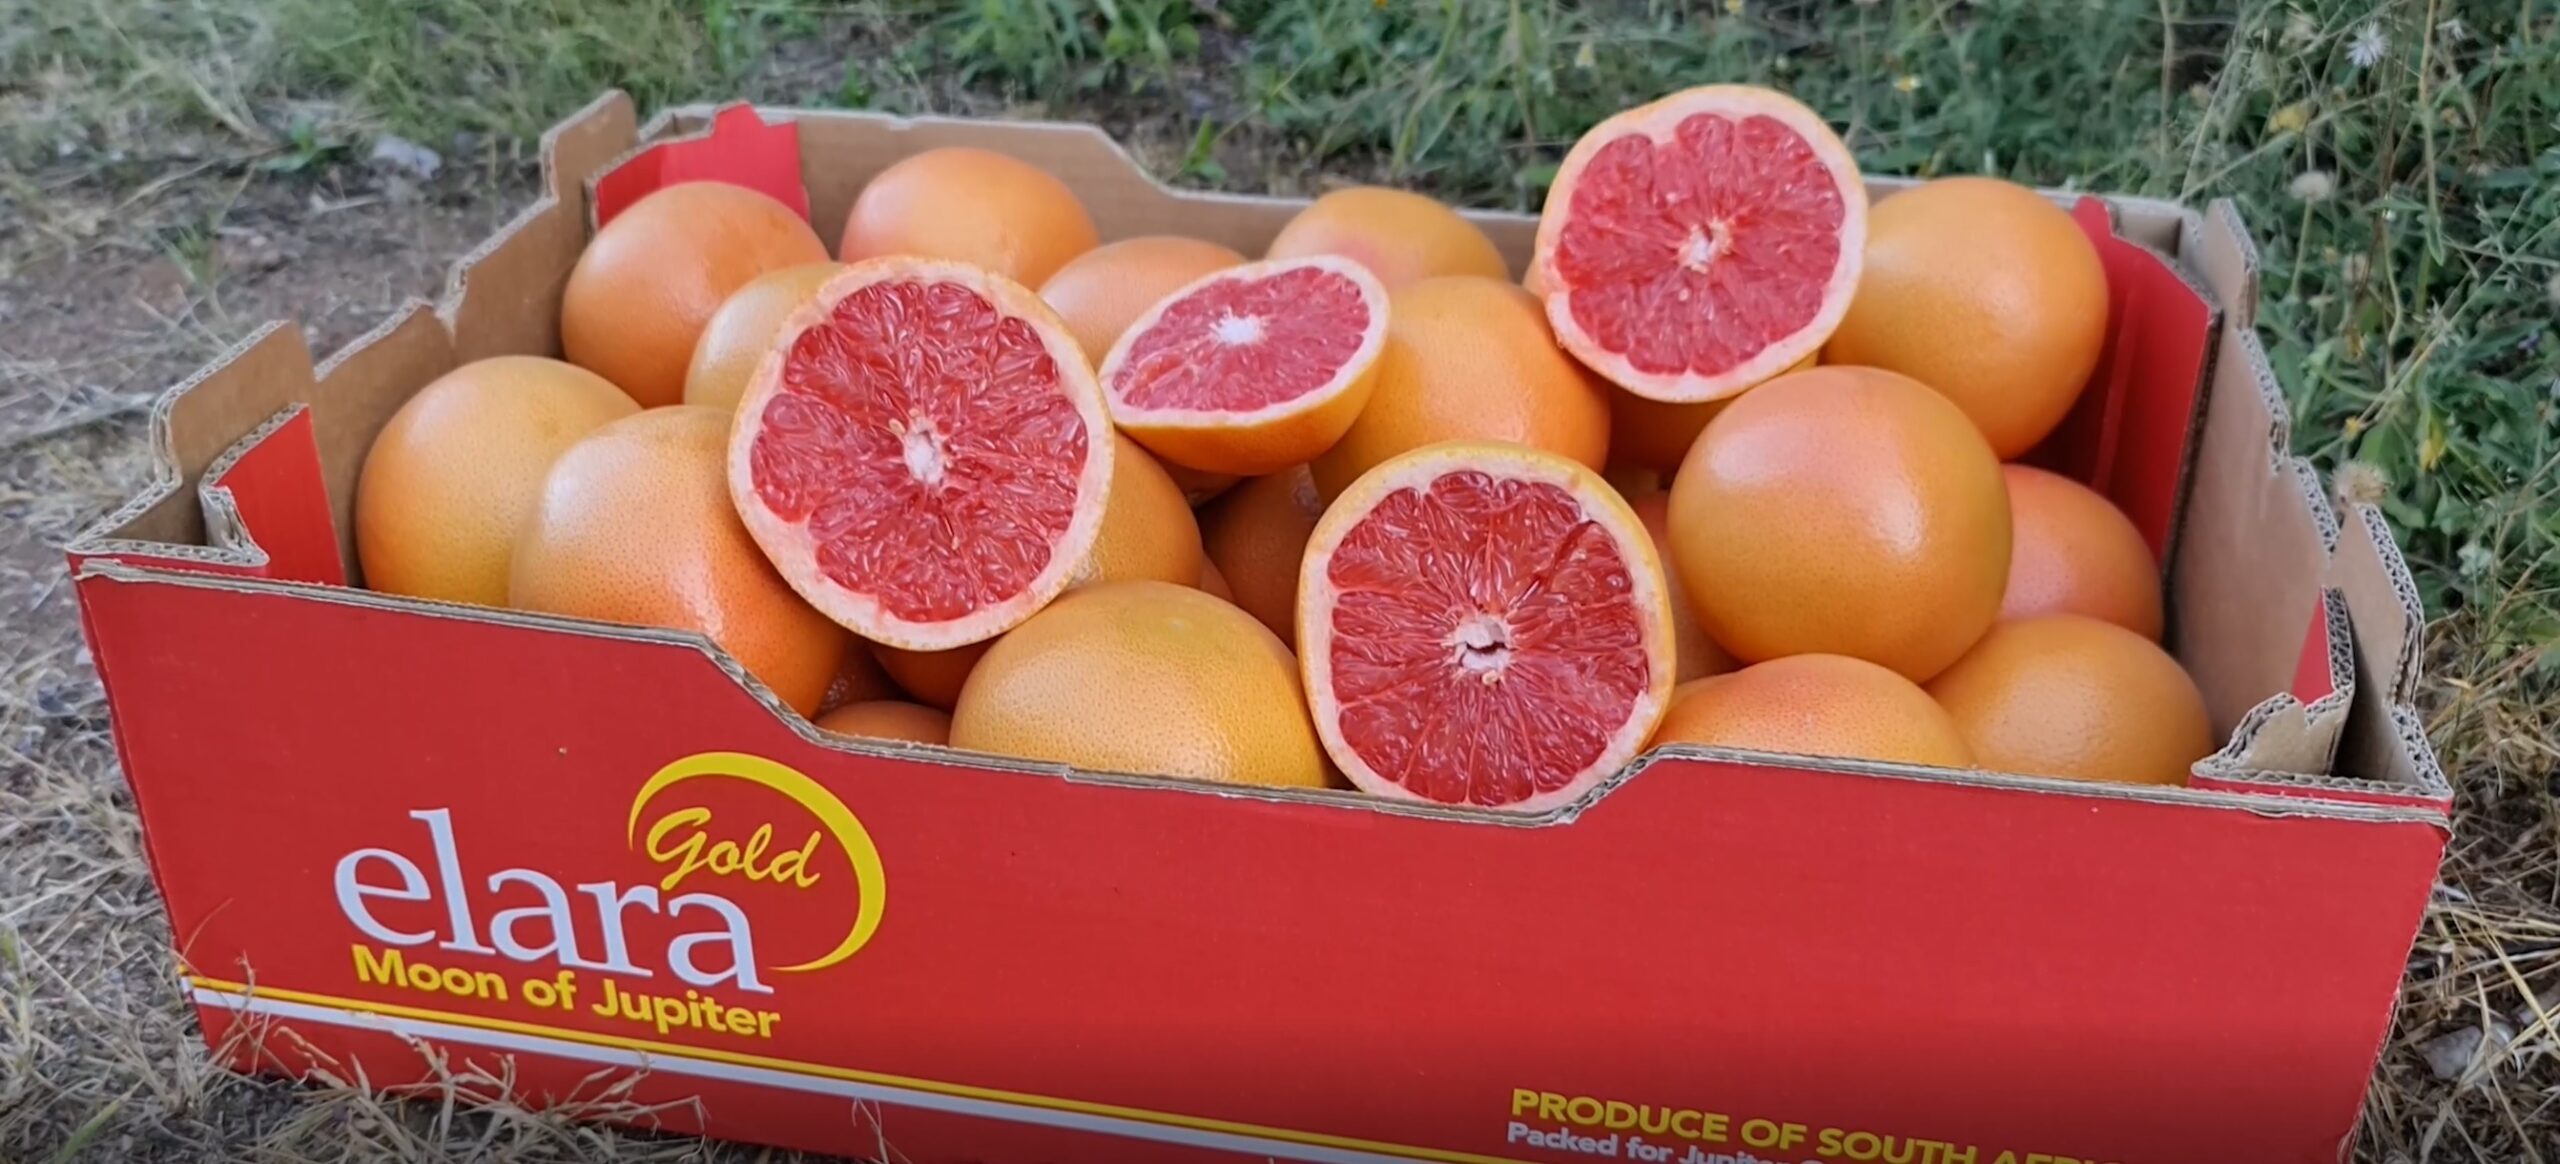 Jupiter Group's Elara Gold grapefruit